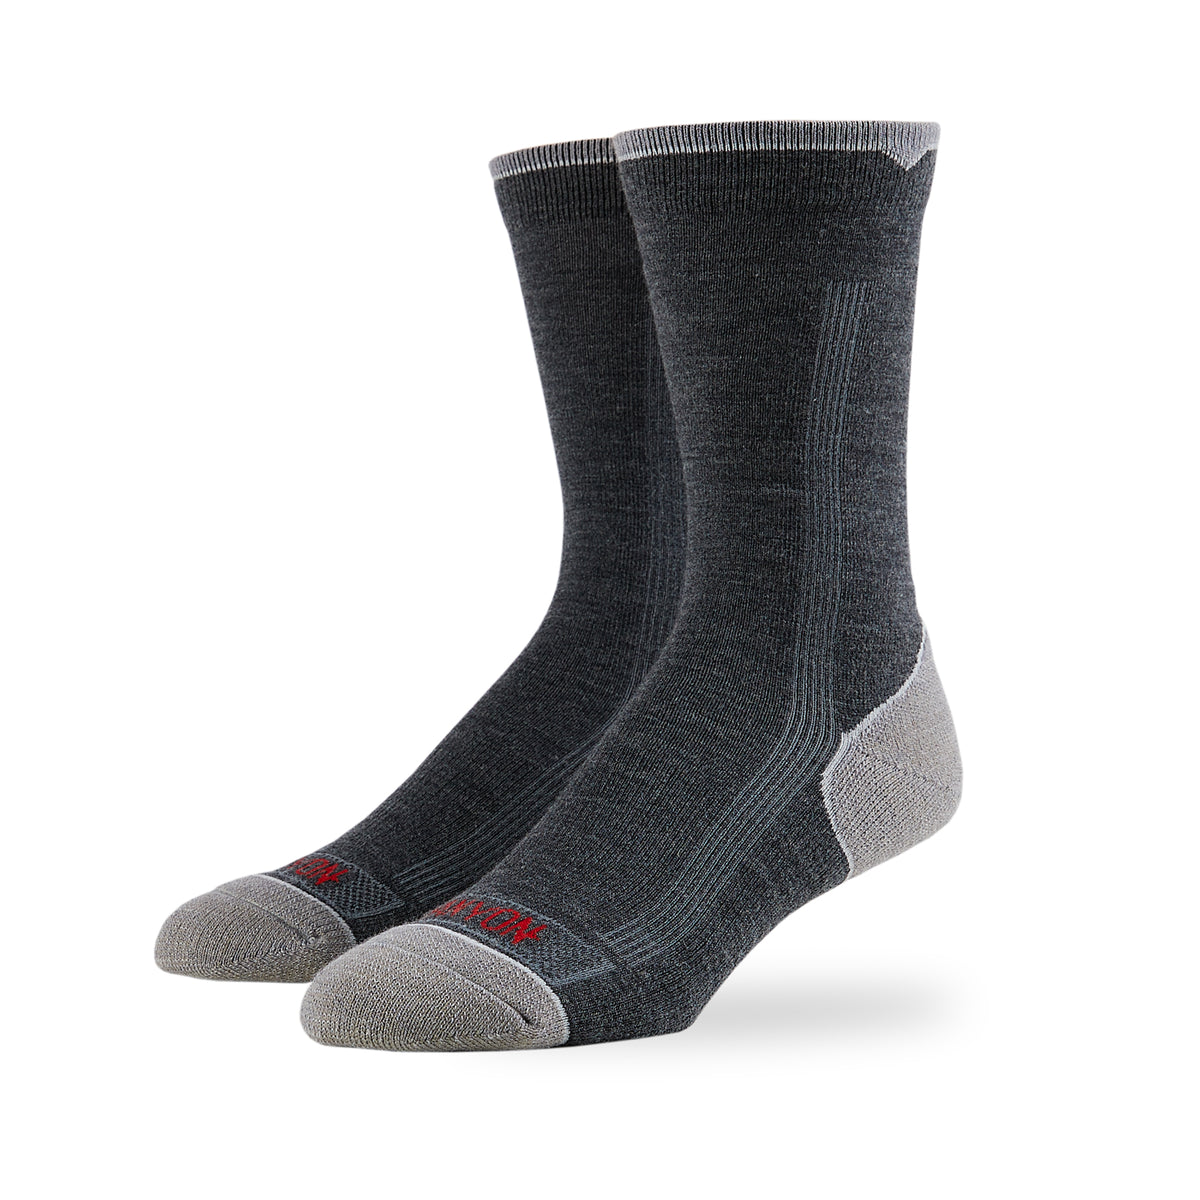 Destination 3 Pack Mix Men's Crew Socks -  by Canyon Socks